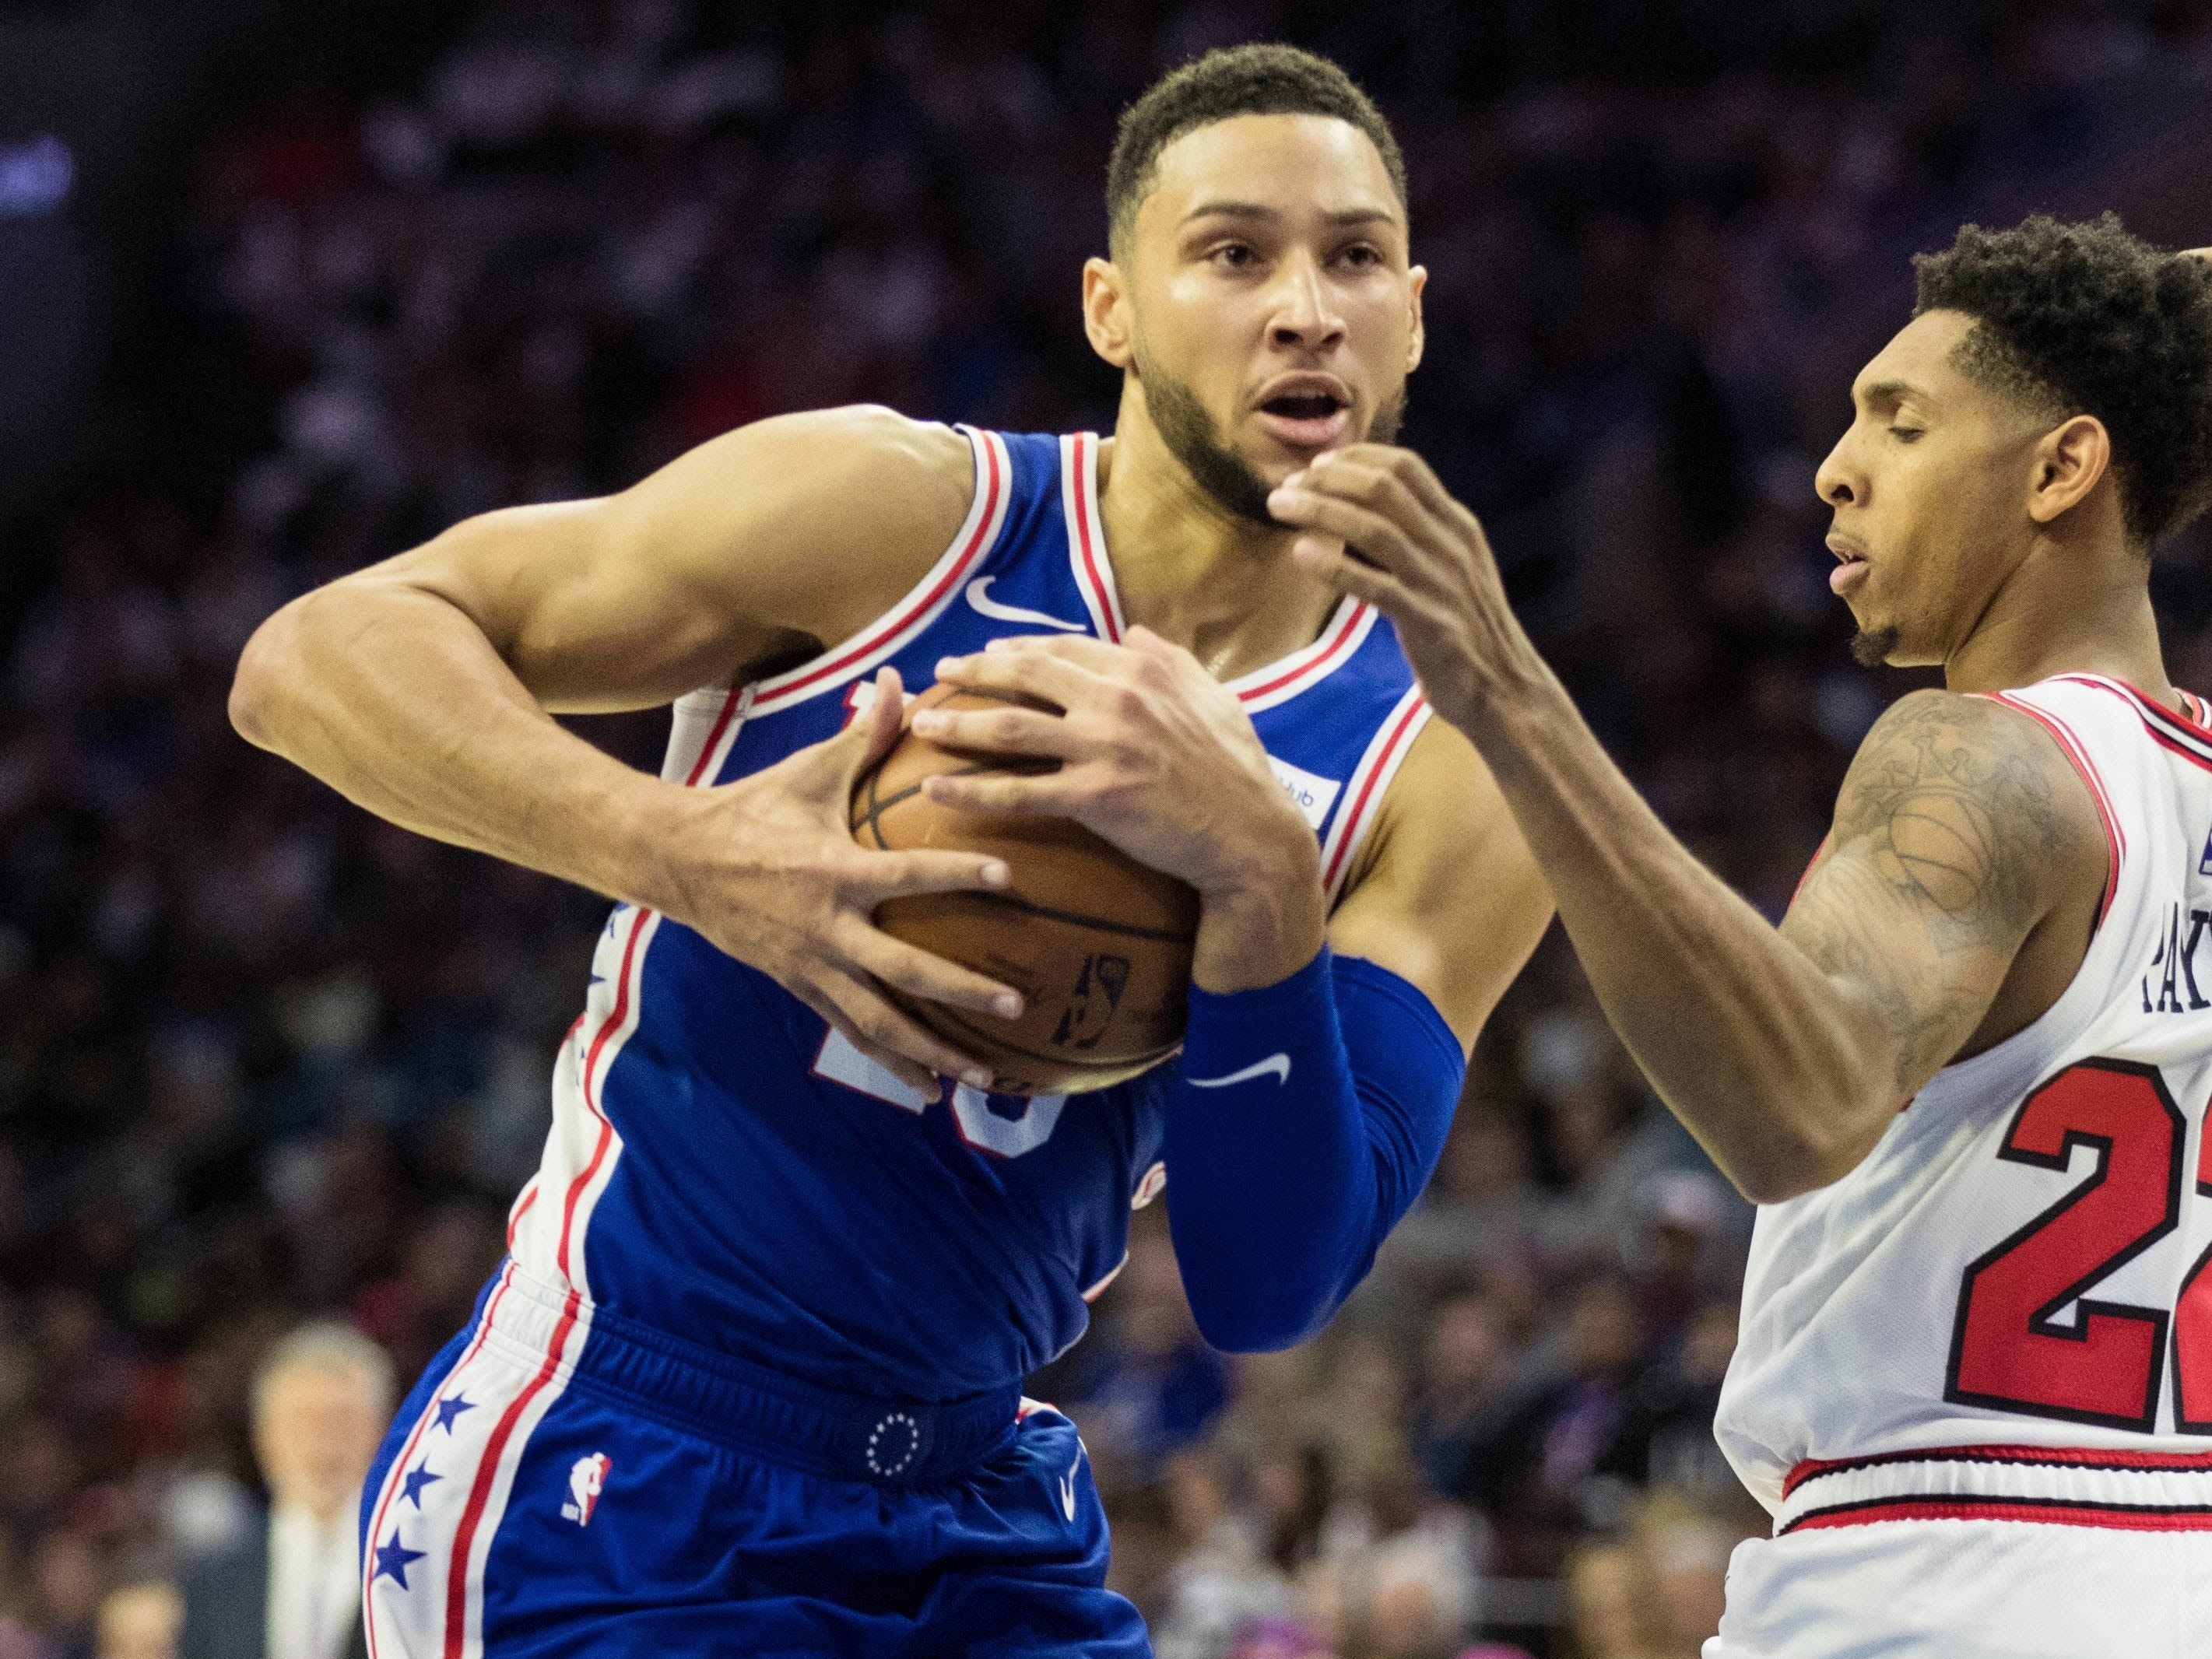 2. Ben Simmons, 76ers (Oct. 18): 13 points, 13 rebounds, 11 assists in 127-108 win over Bulls.